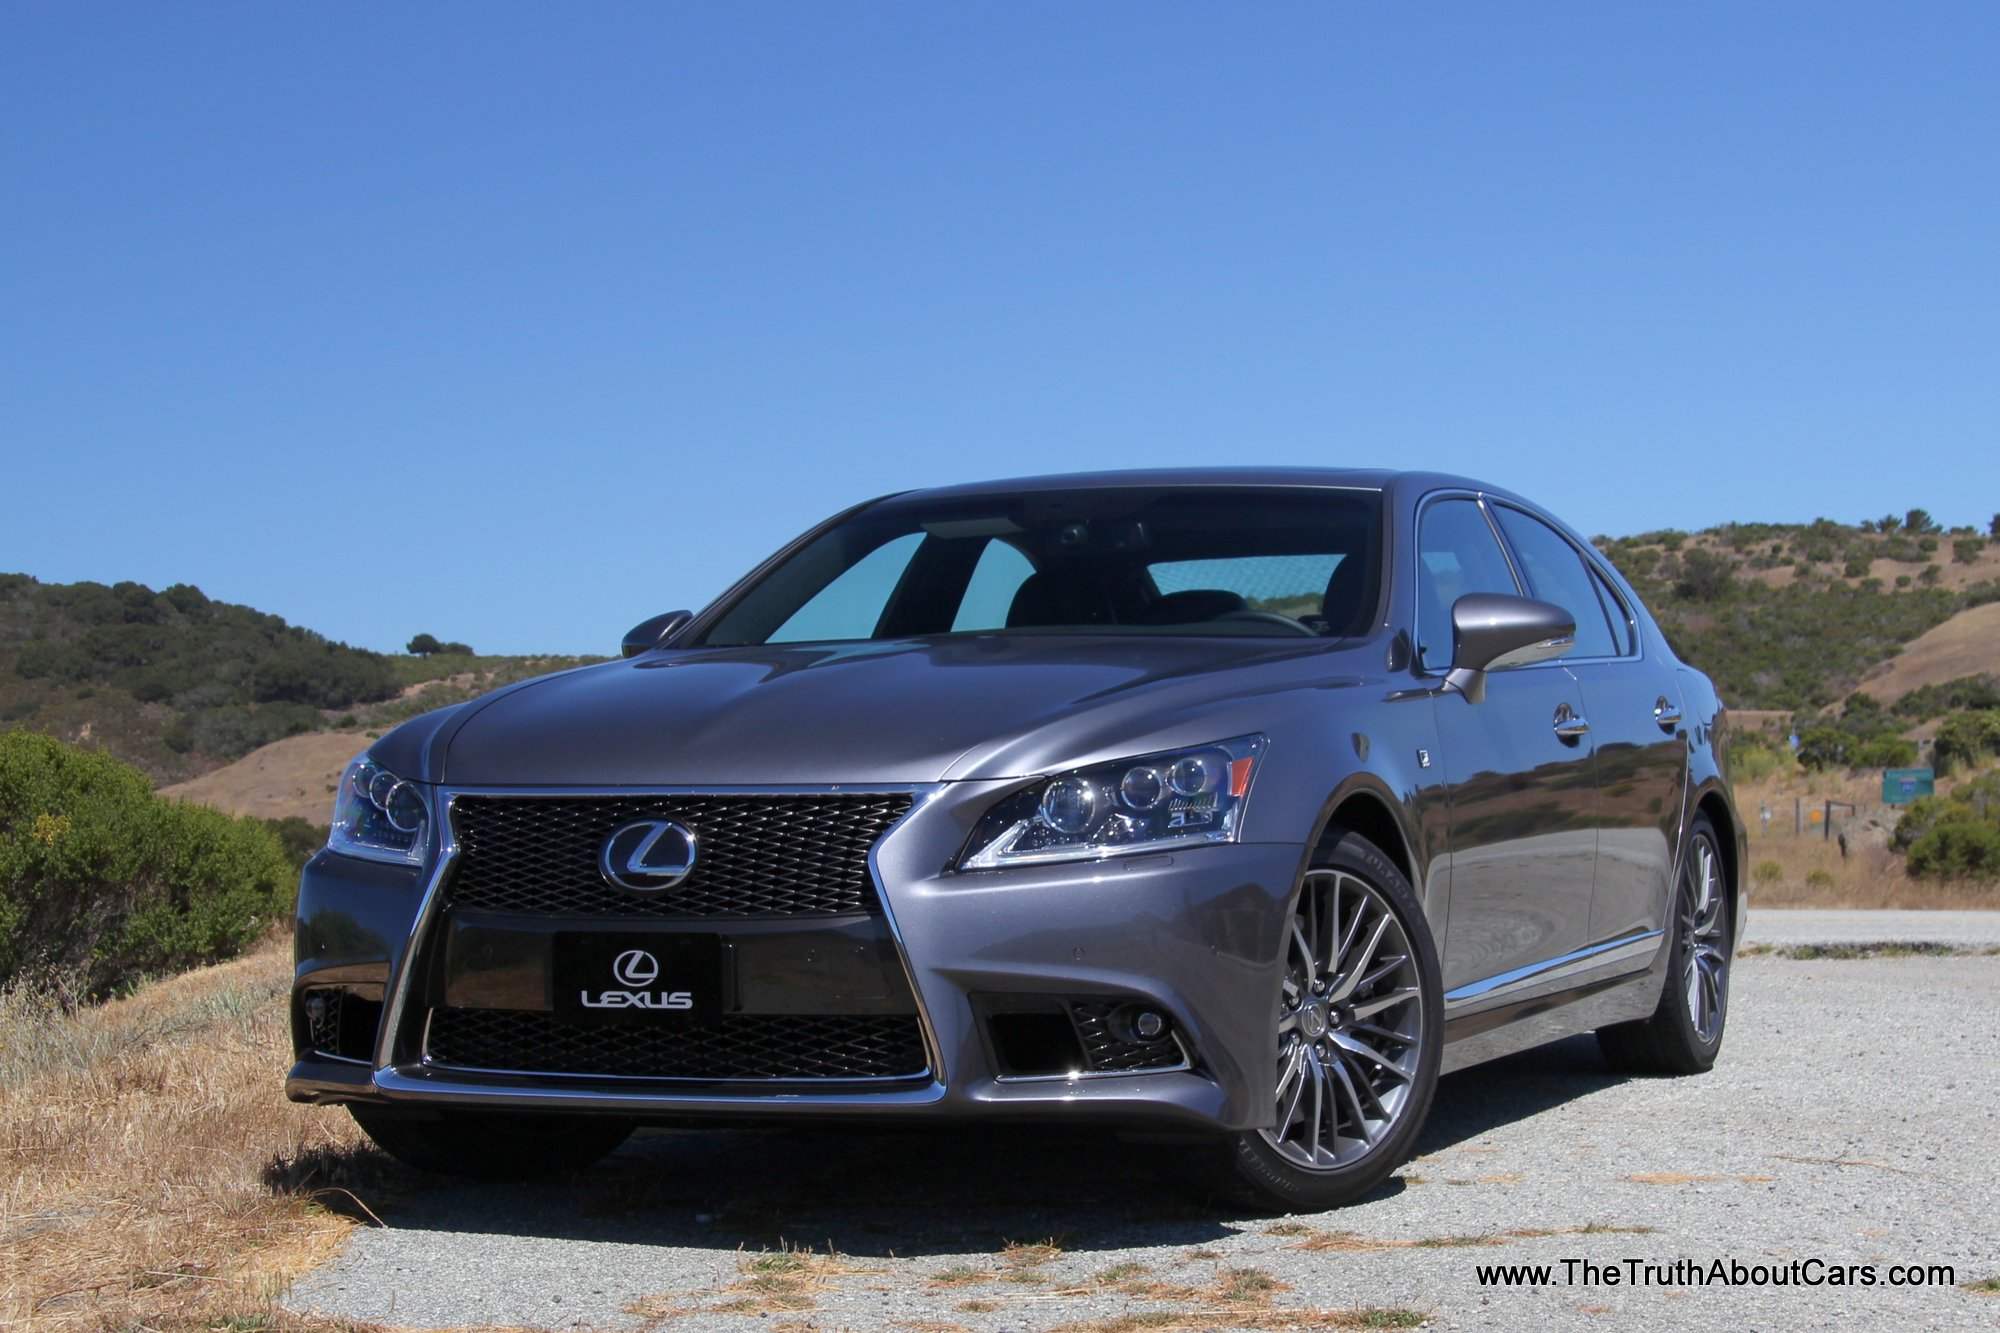 Lexus LS 460 photo 06